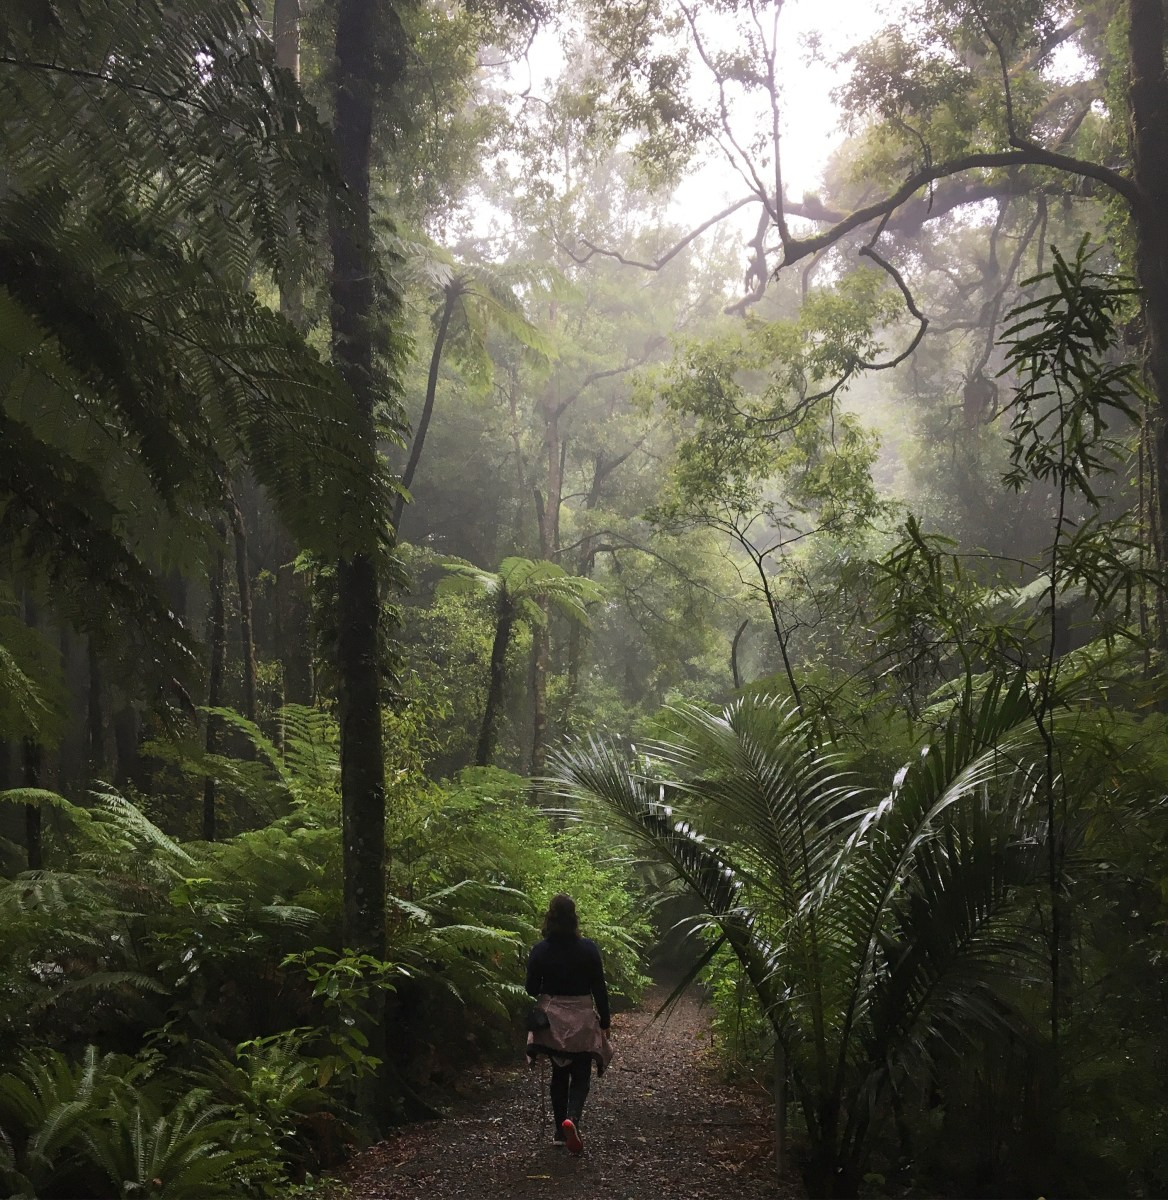 New Zealand's Slice Of Jurassic Park